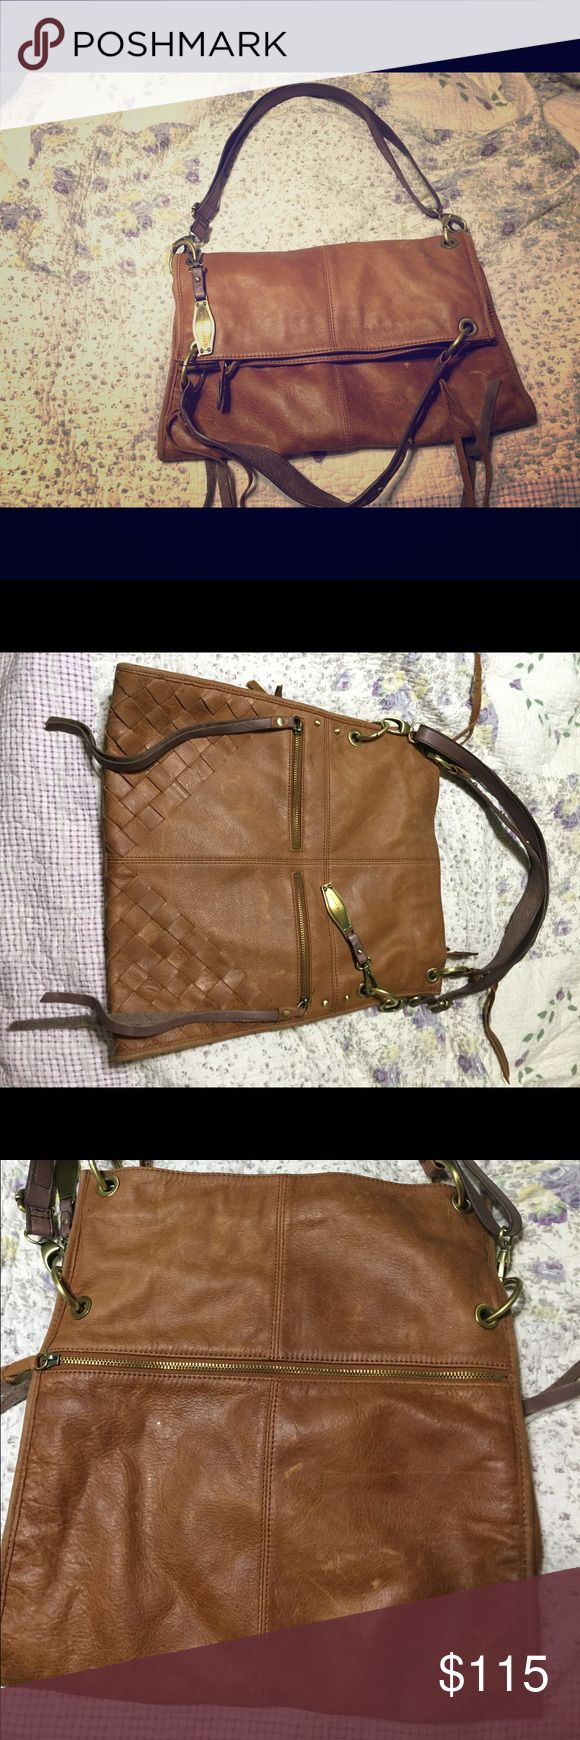 Lucky fold over purse Lucky brand fold over purse in excellent used condition there are a few scratches from use but still in almost new condition very soft leather **my home is not smoke nor pet free so please be aware**        Thanks for looking Lucky Brand Bags Shoulder Bags